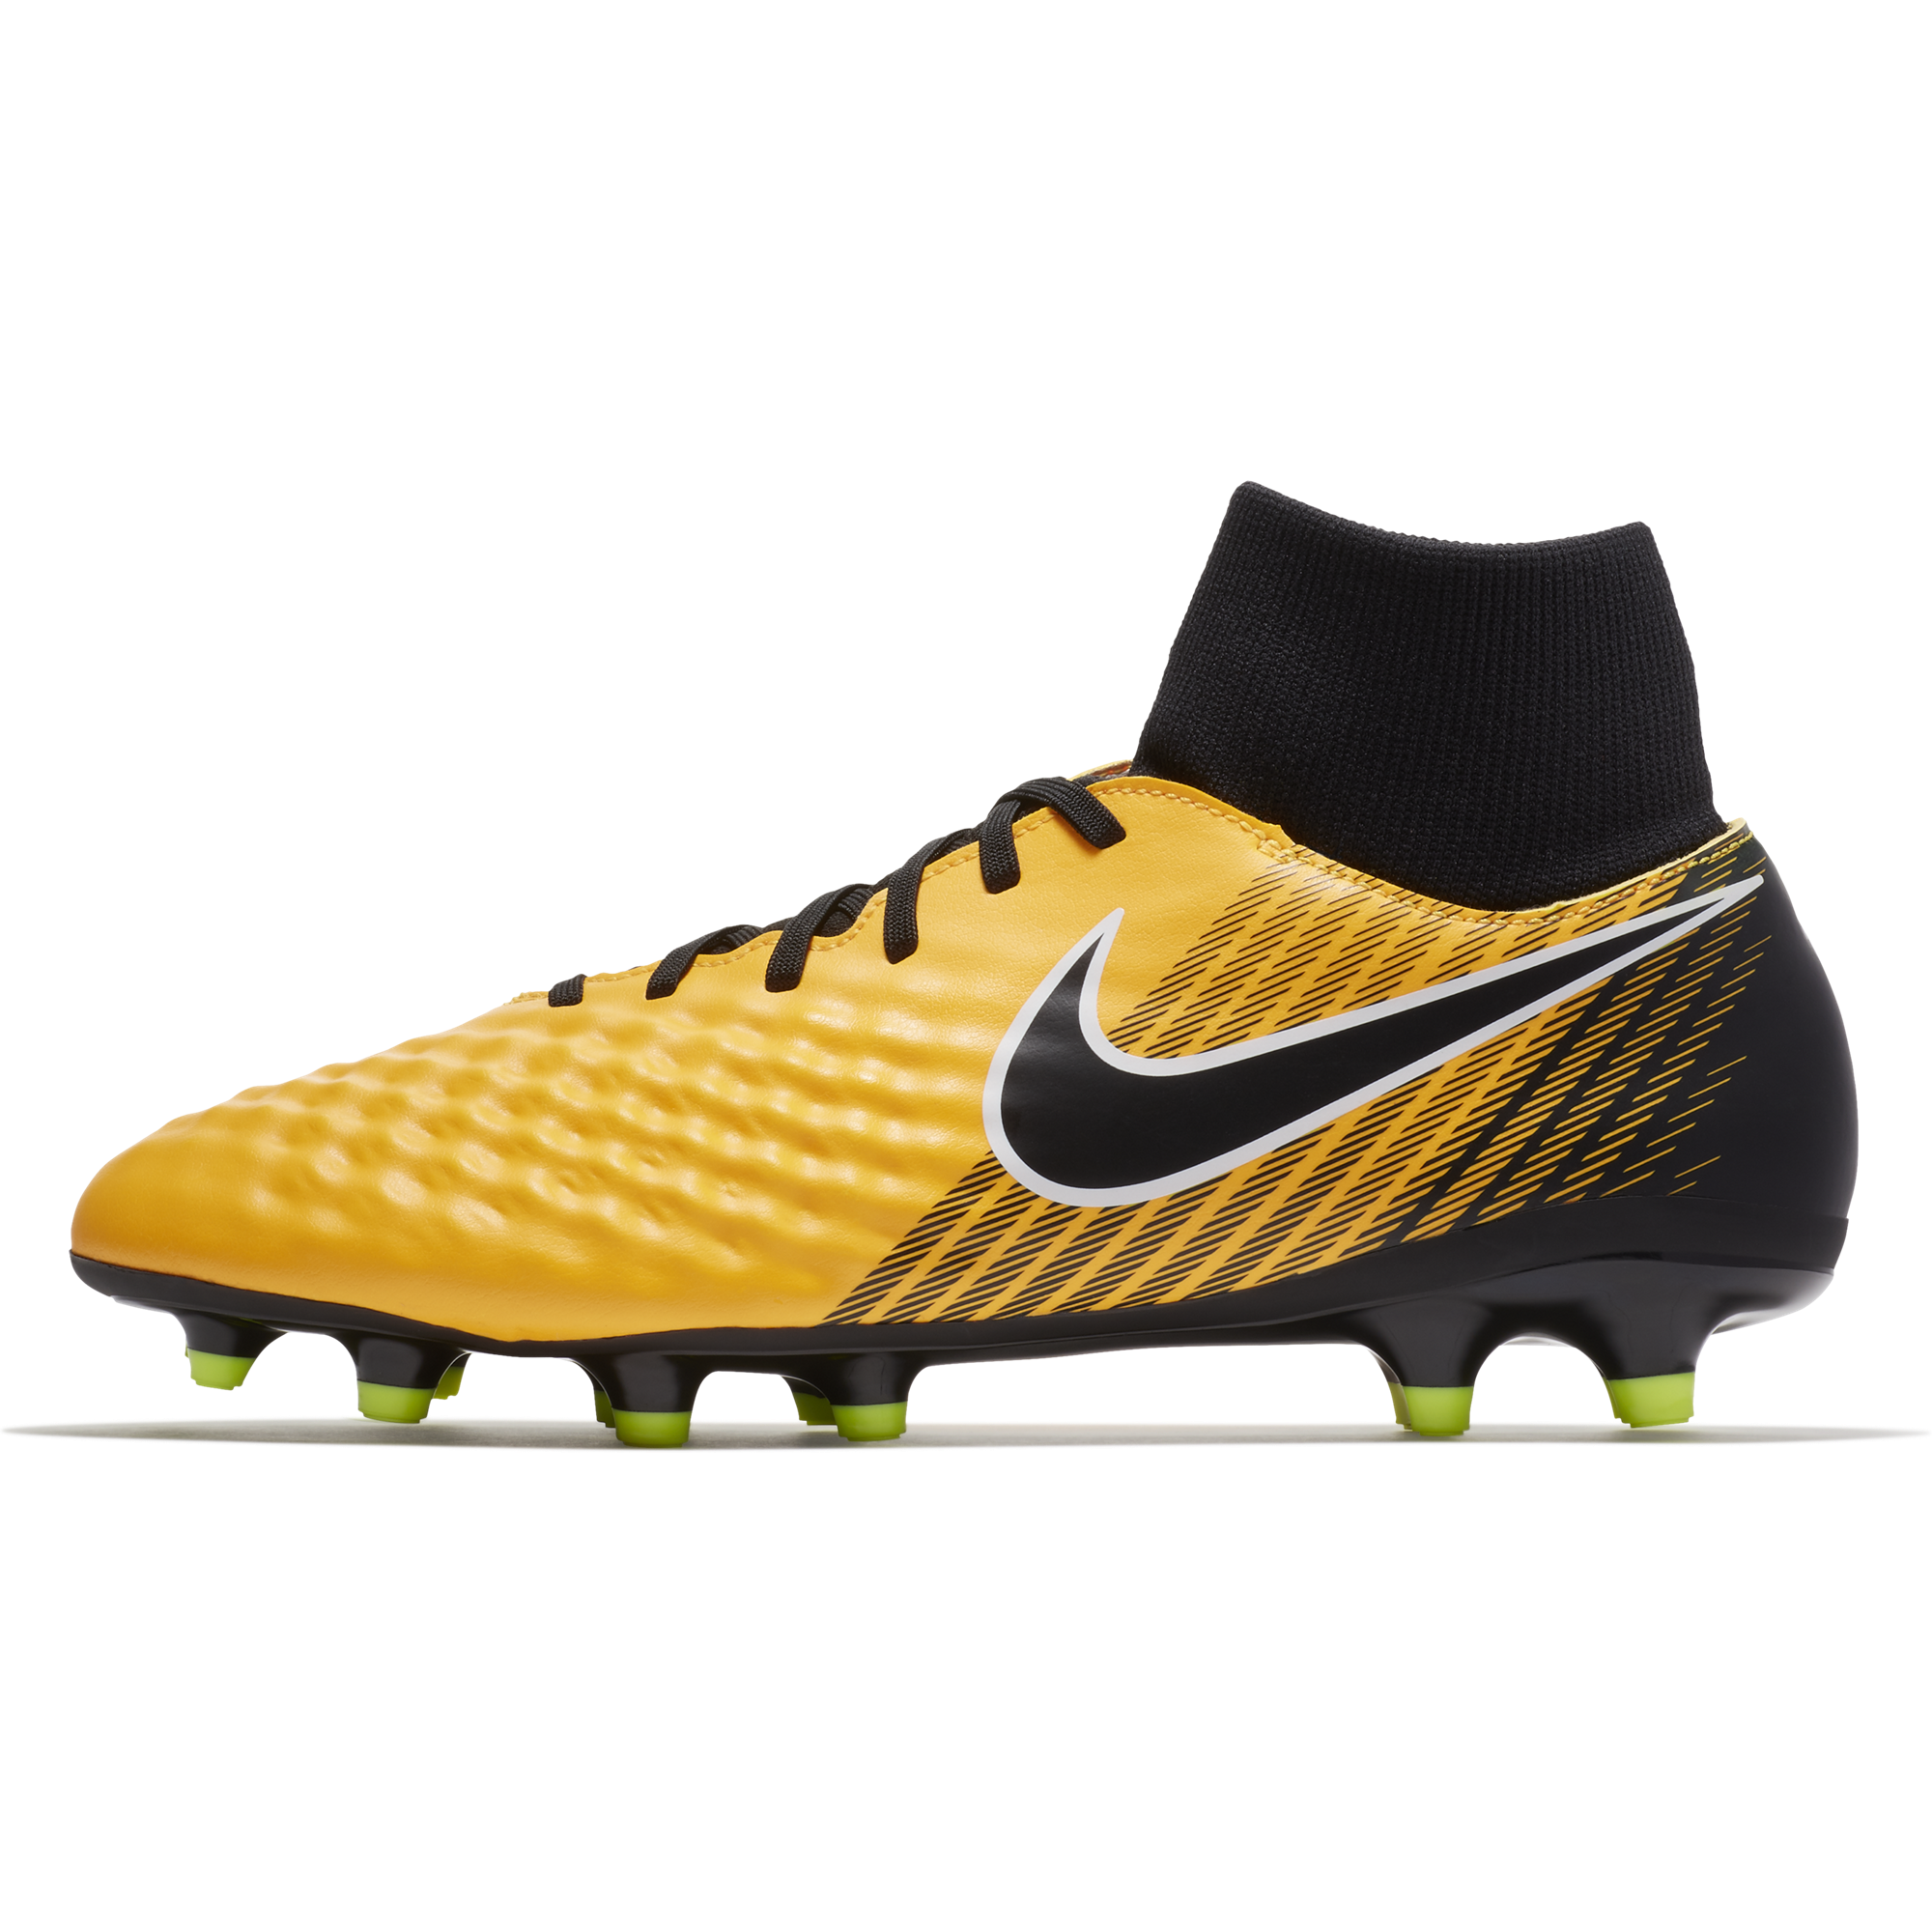 Tierra robo Ligadura  Men's Nike Magista Onda II Dynamic Fit FG – Juggles Football Culture